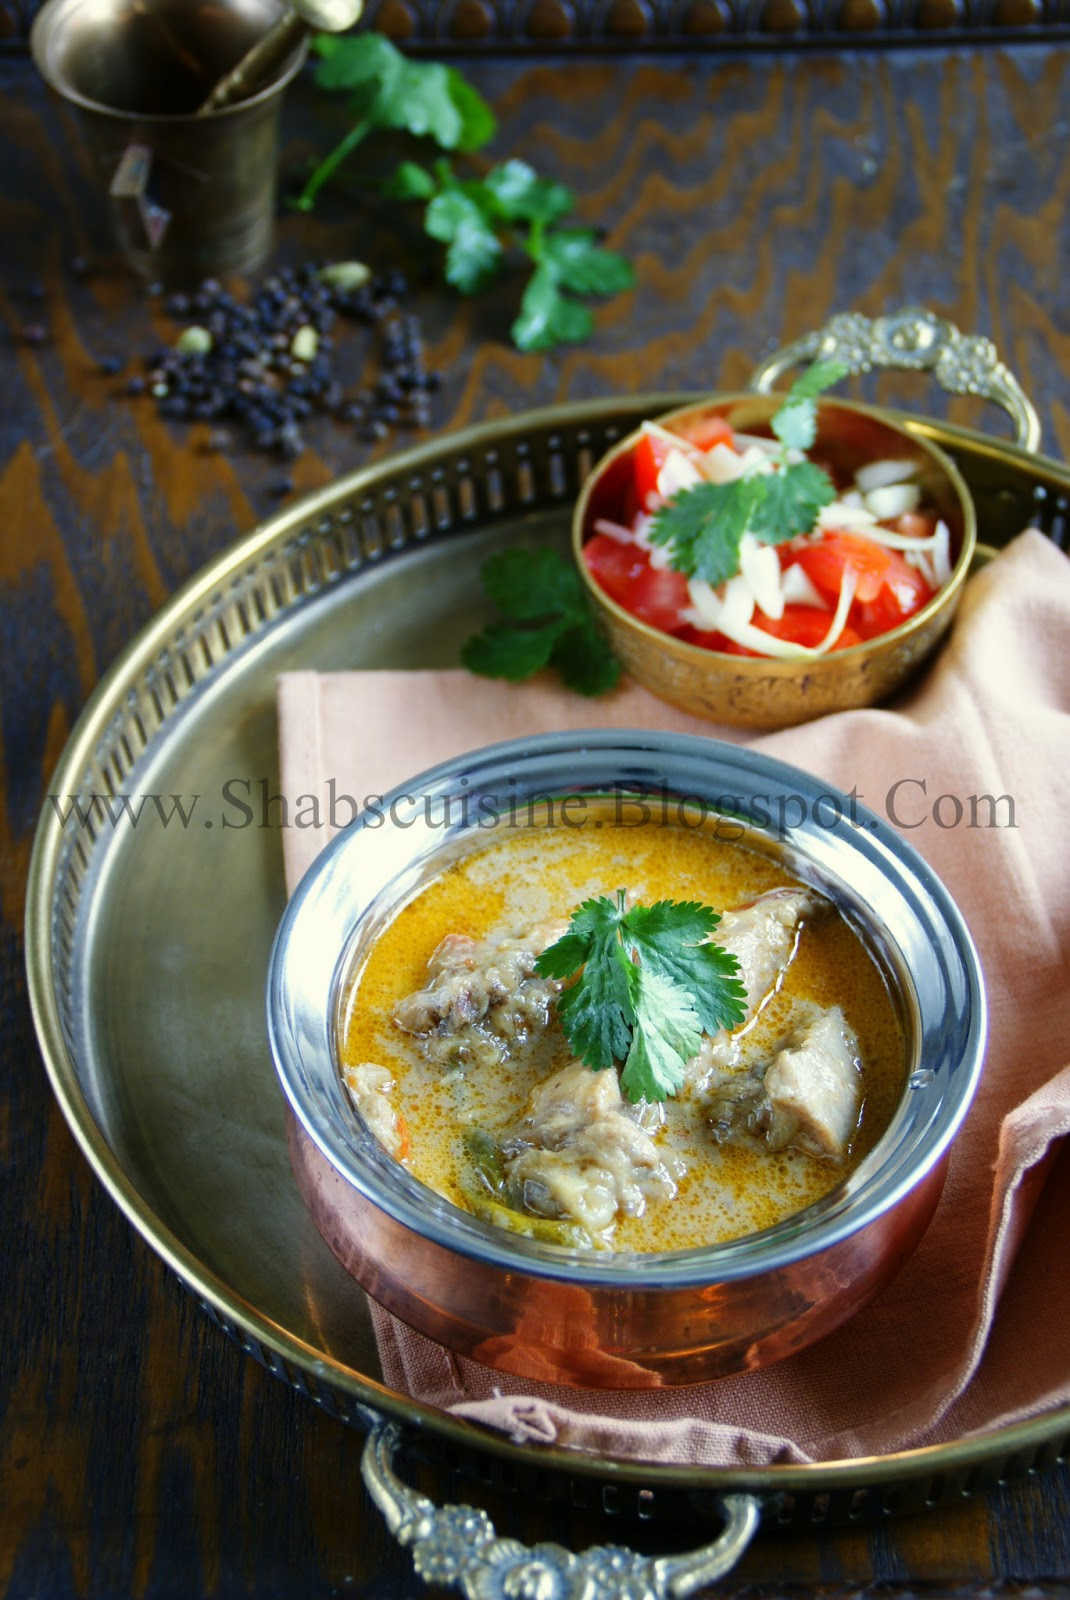 Shab 39 s cuisine kerala chicken stew two recipes for Cuisine kerala